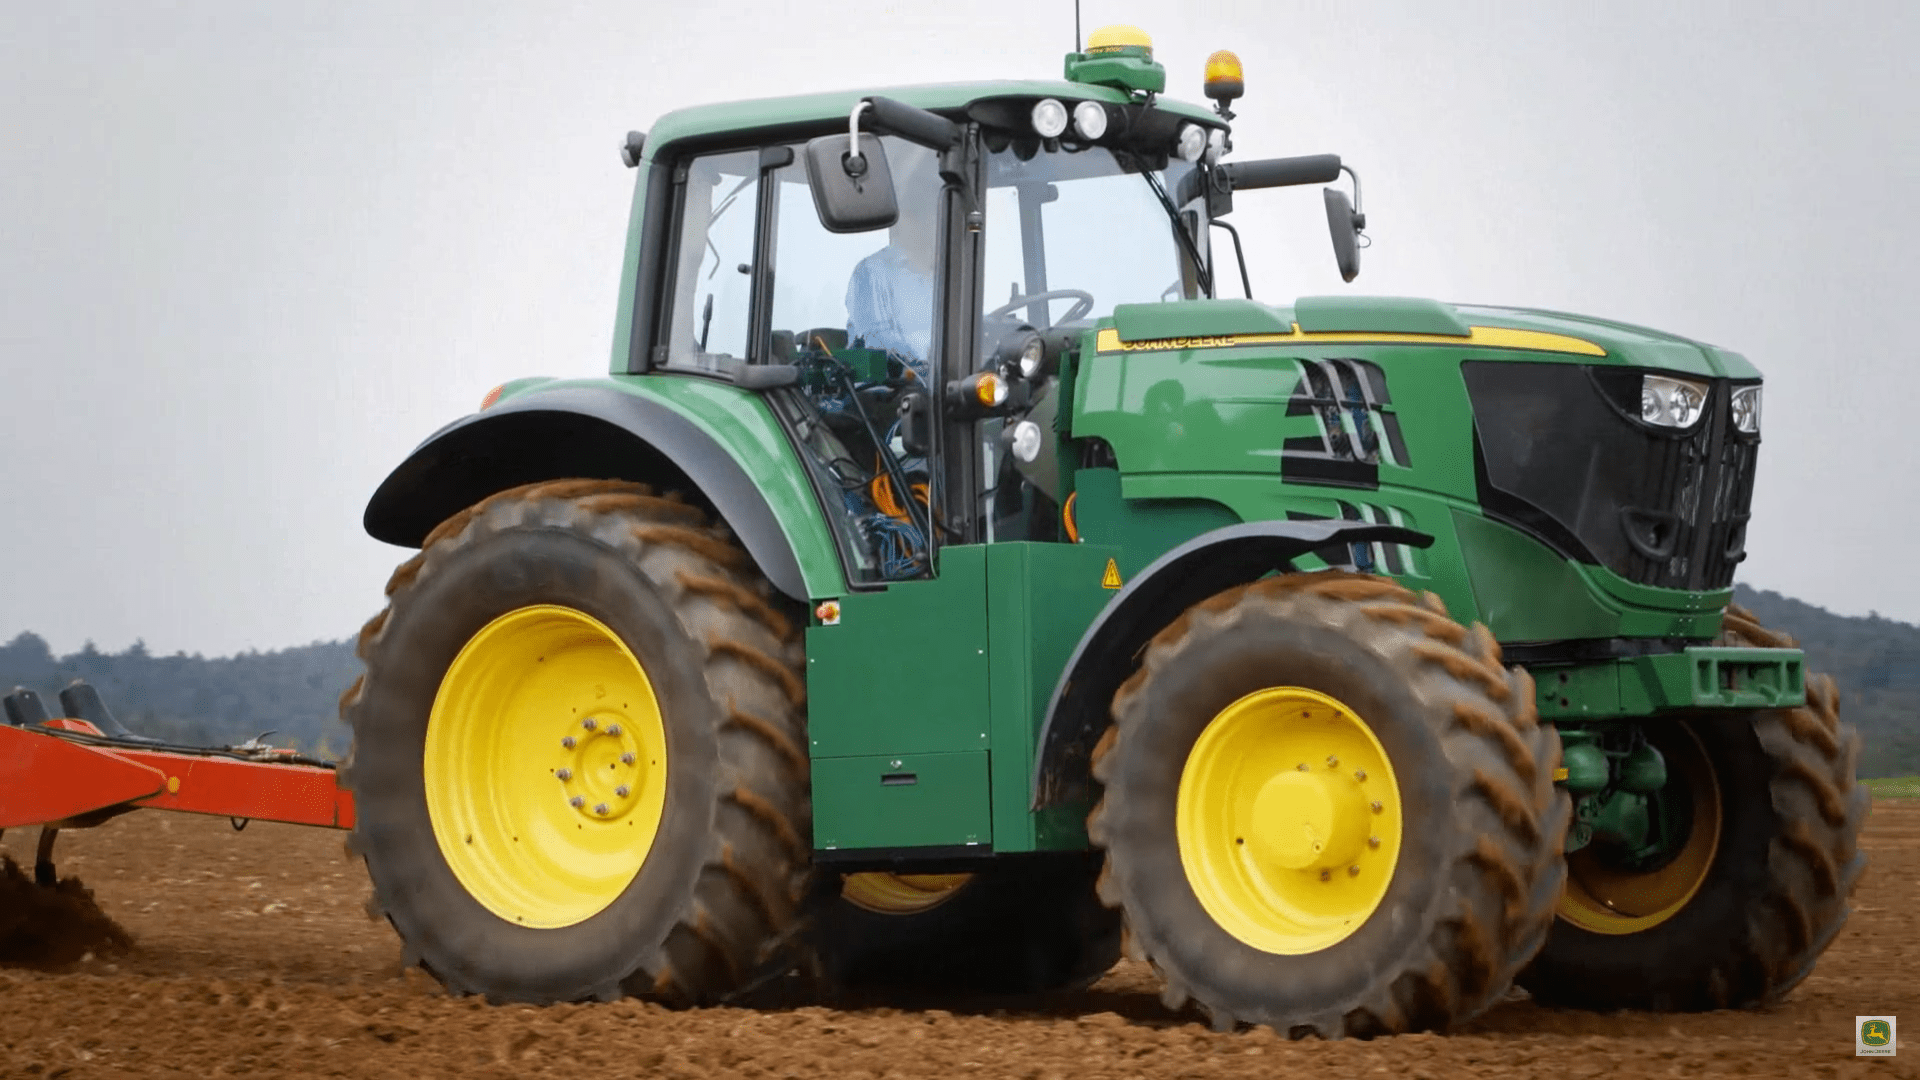 John Deere unveils latest all-electric tractor prototype ...